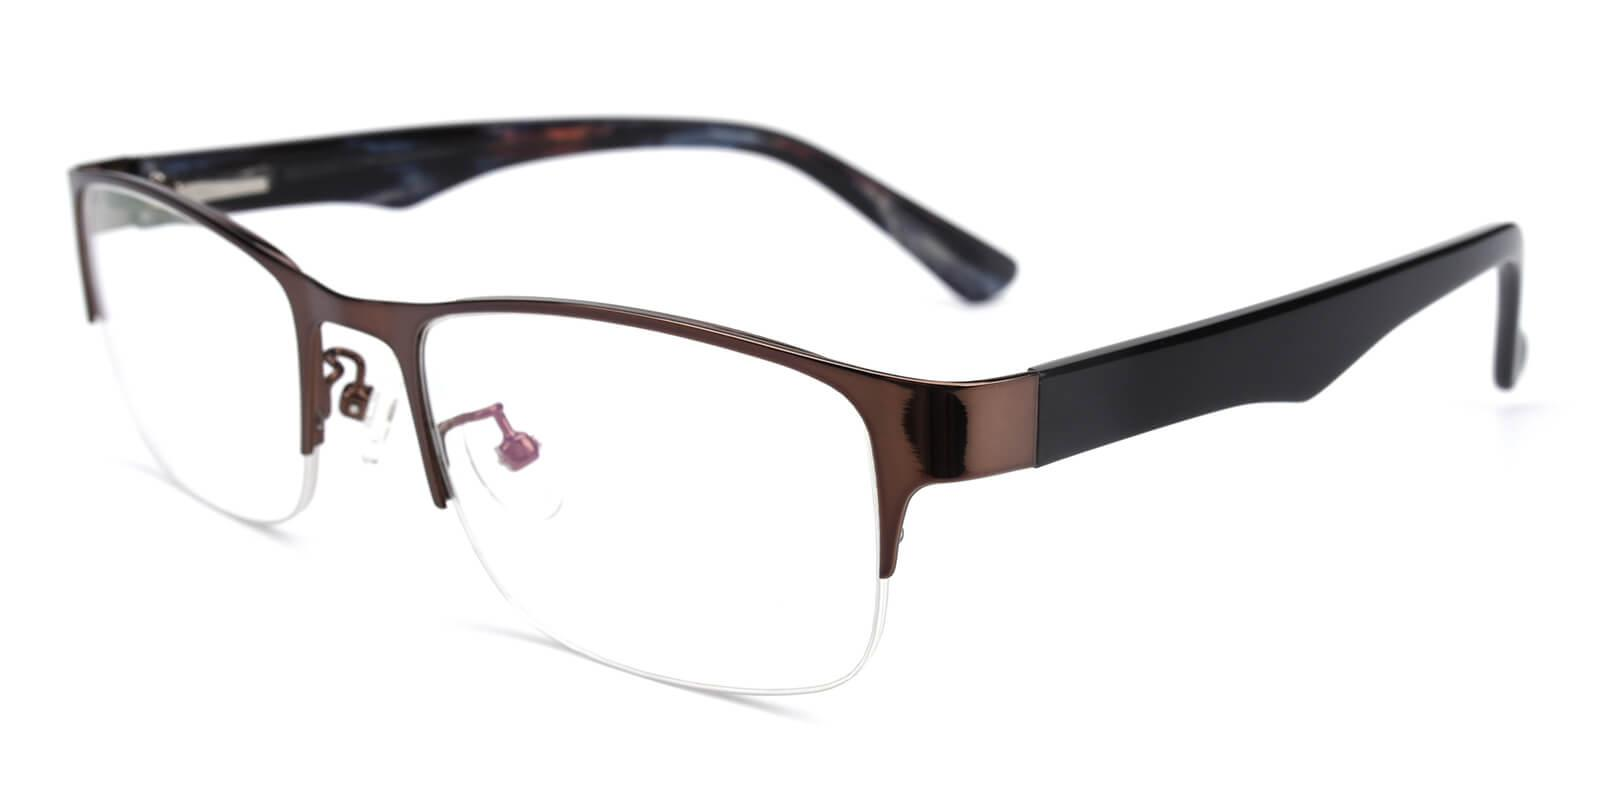 Sapphire-Brown-Rectangle-Metal-Eyeglasses-additional1